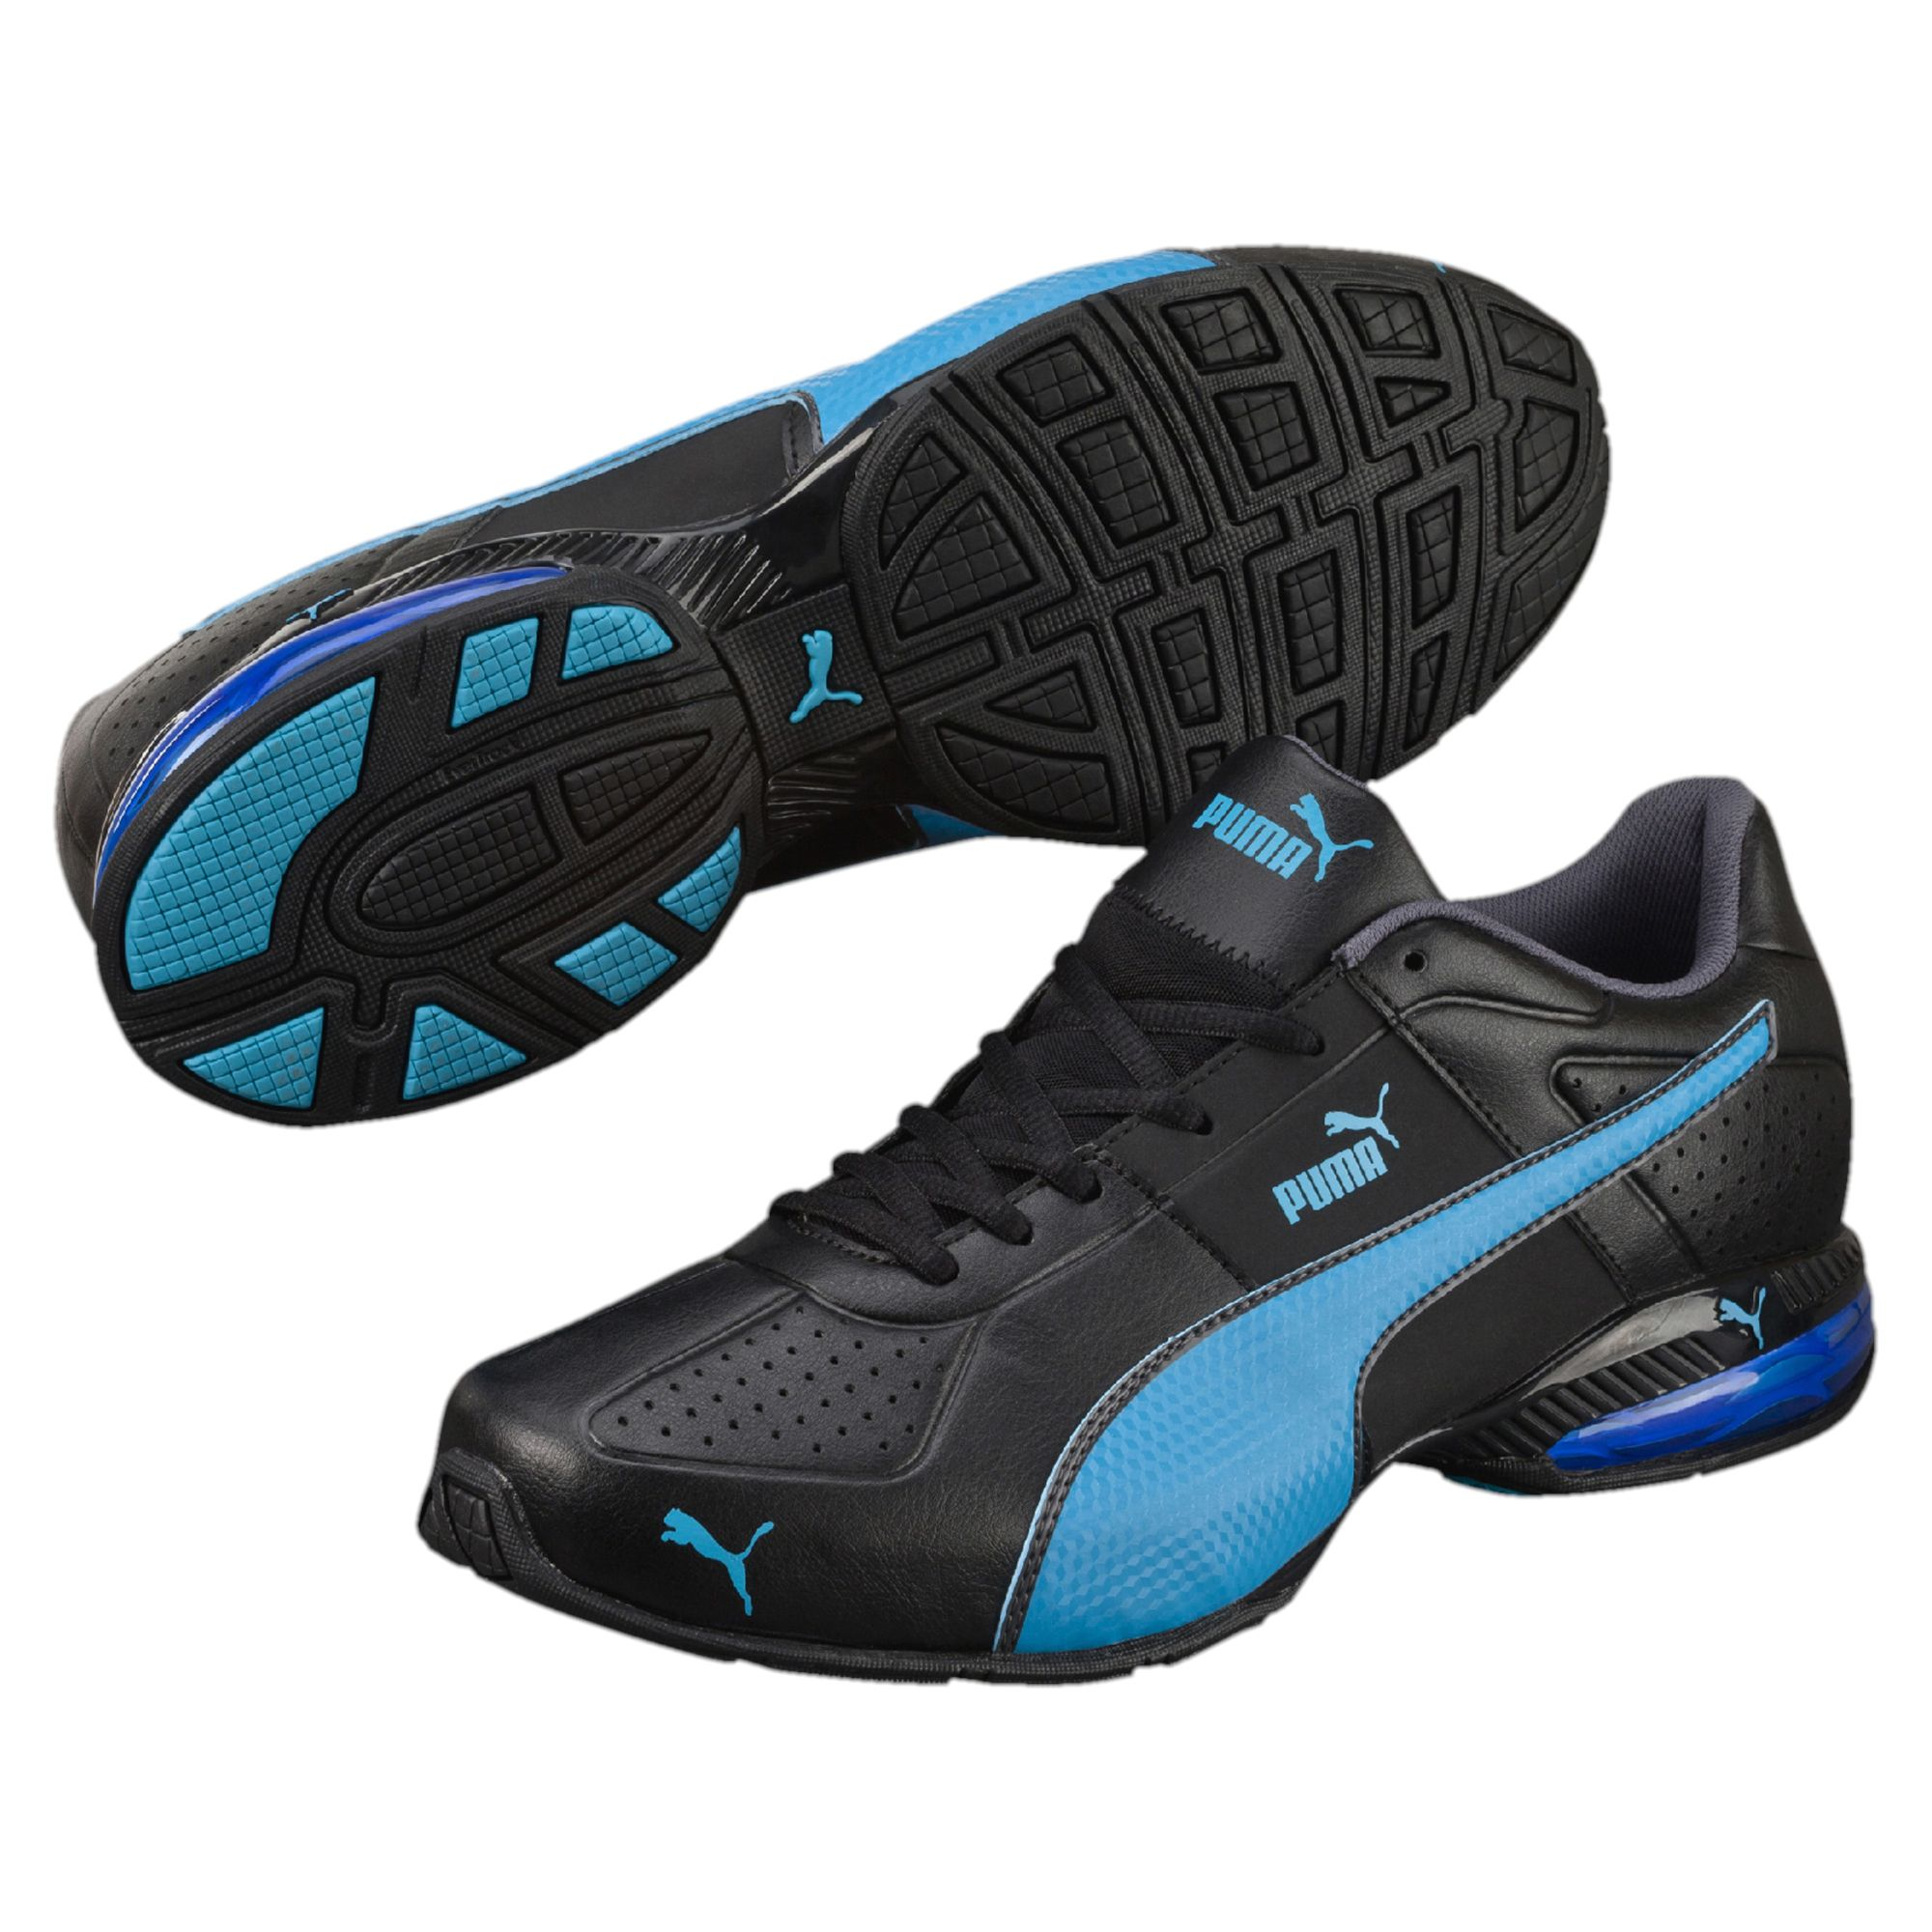 Puma Cell Surin 2 Men's Training Shoes Black Atomic Blue Asphalt